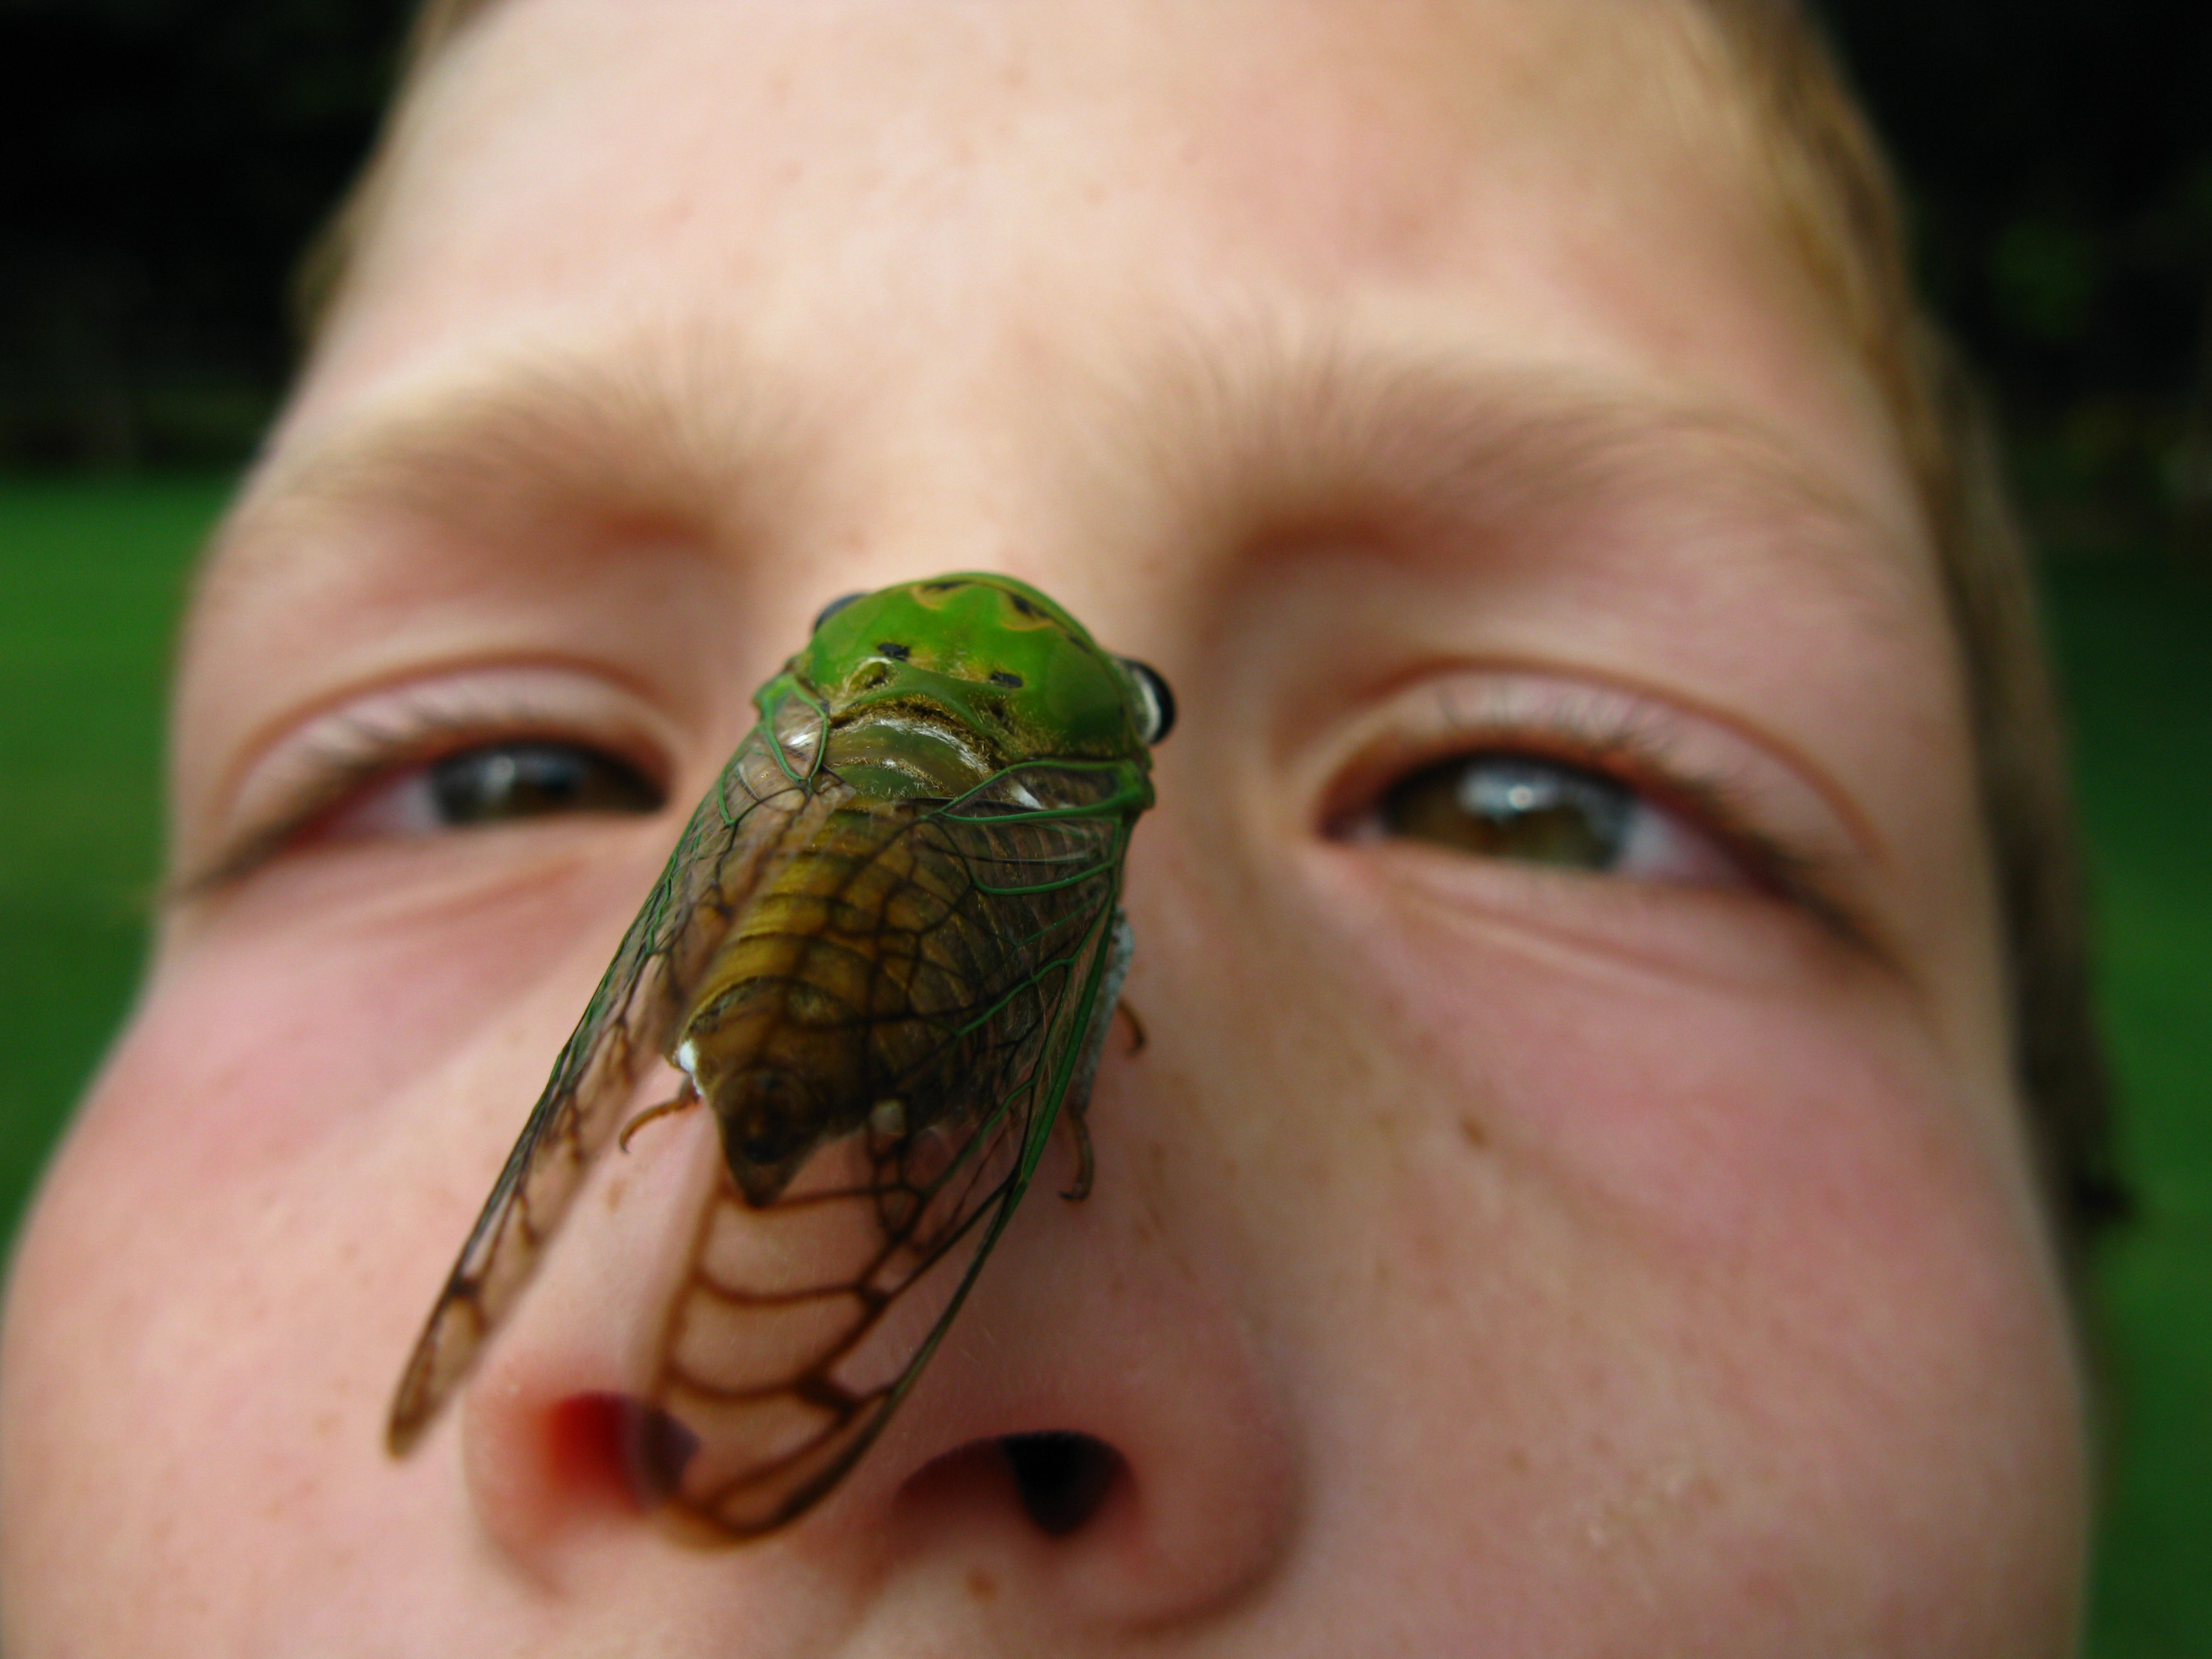 Don't be afraid of our cicada friends!